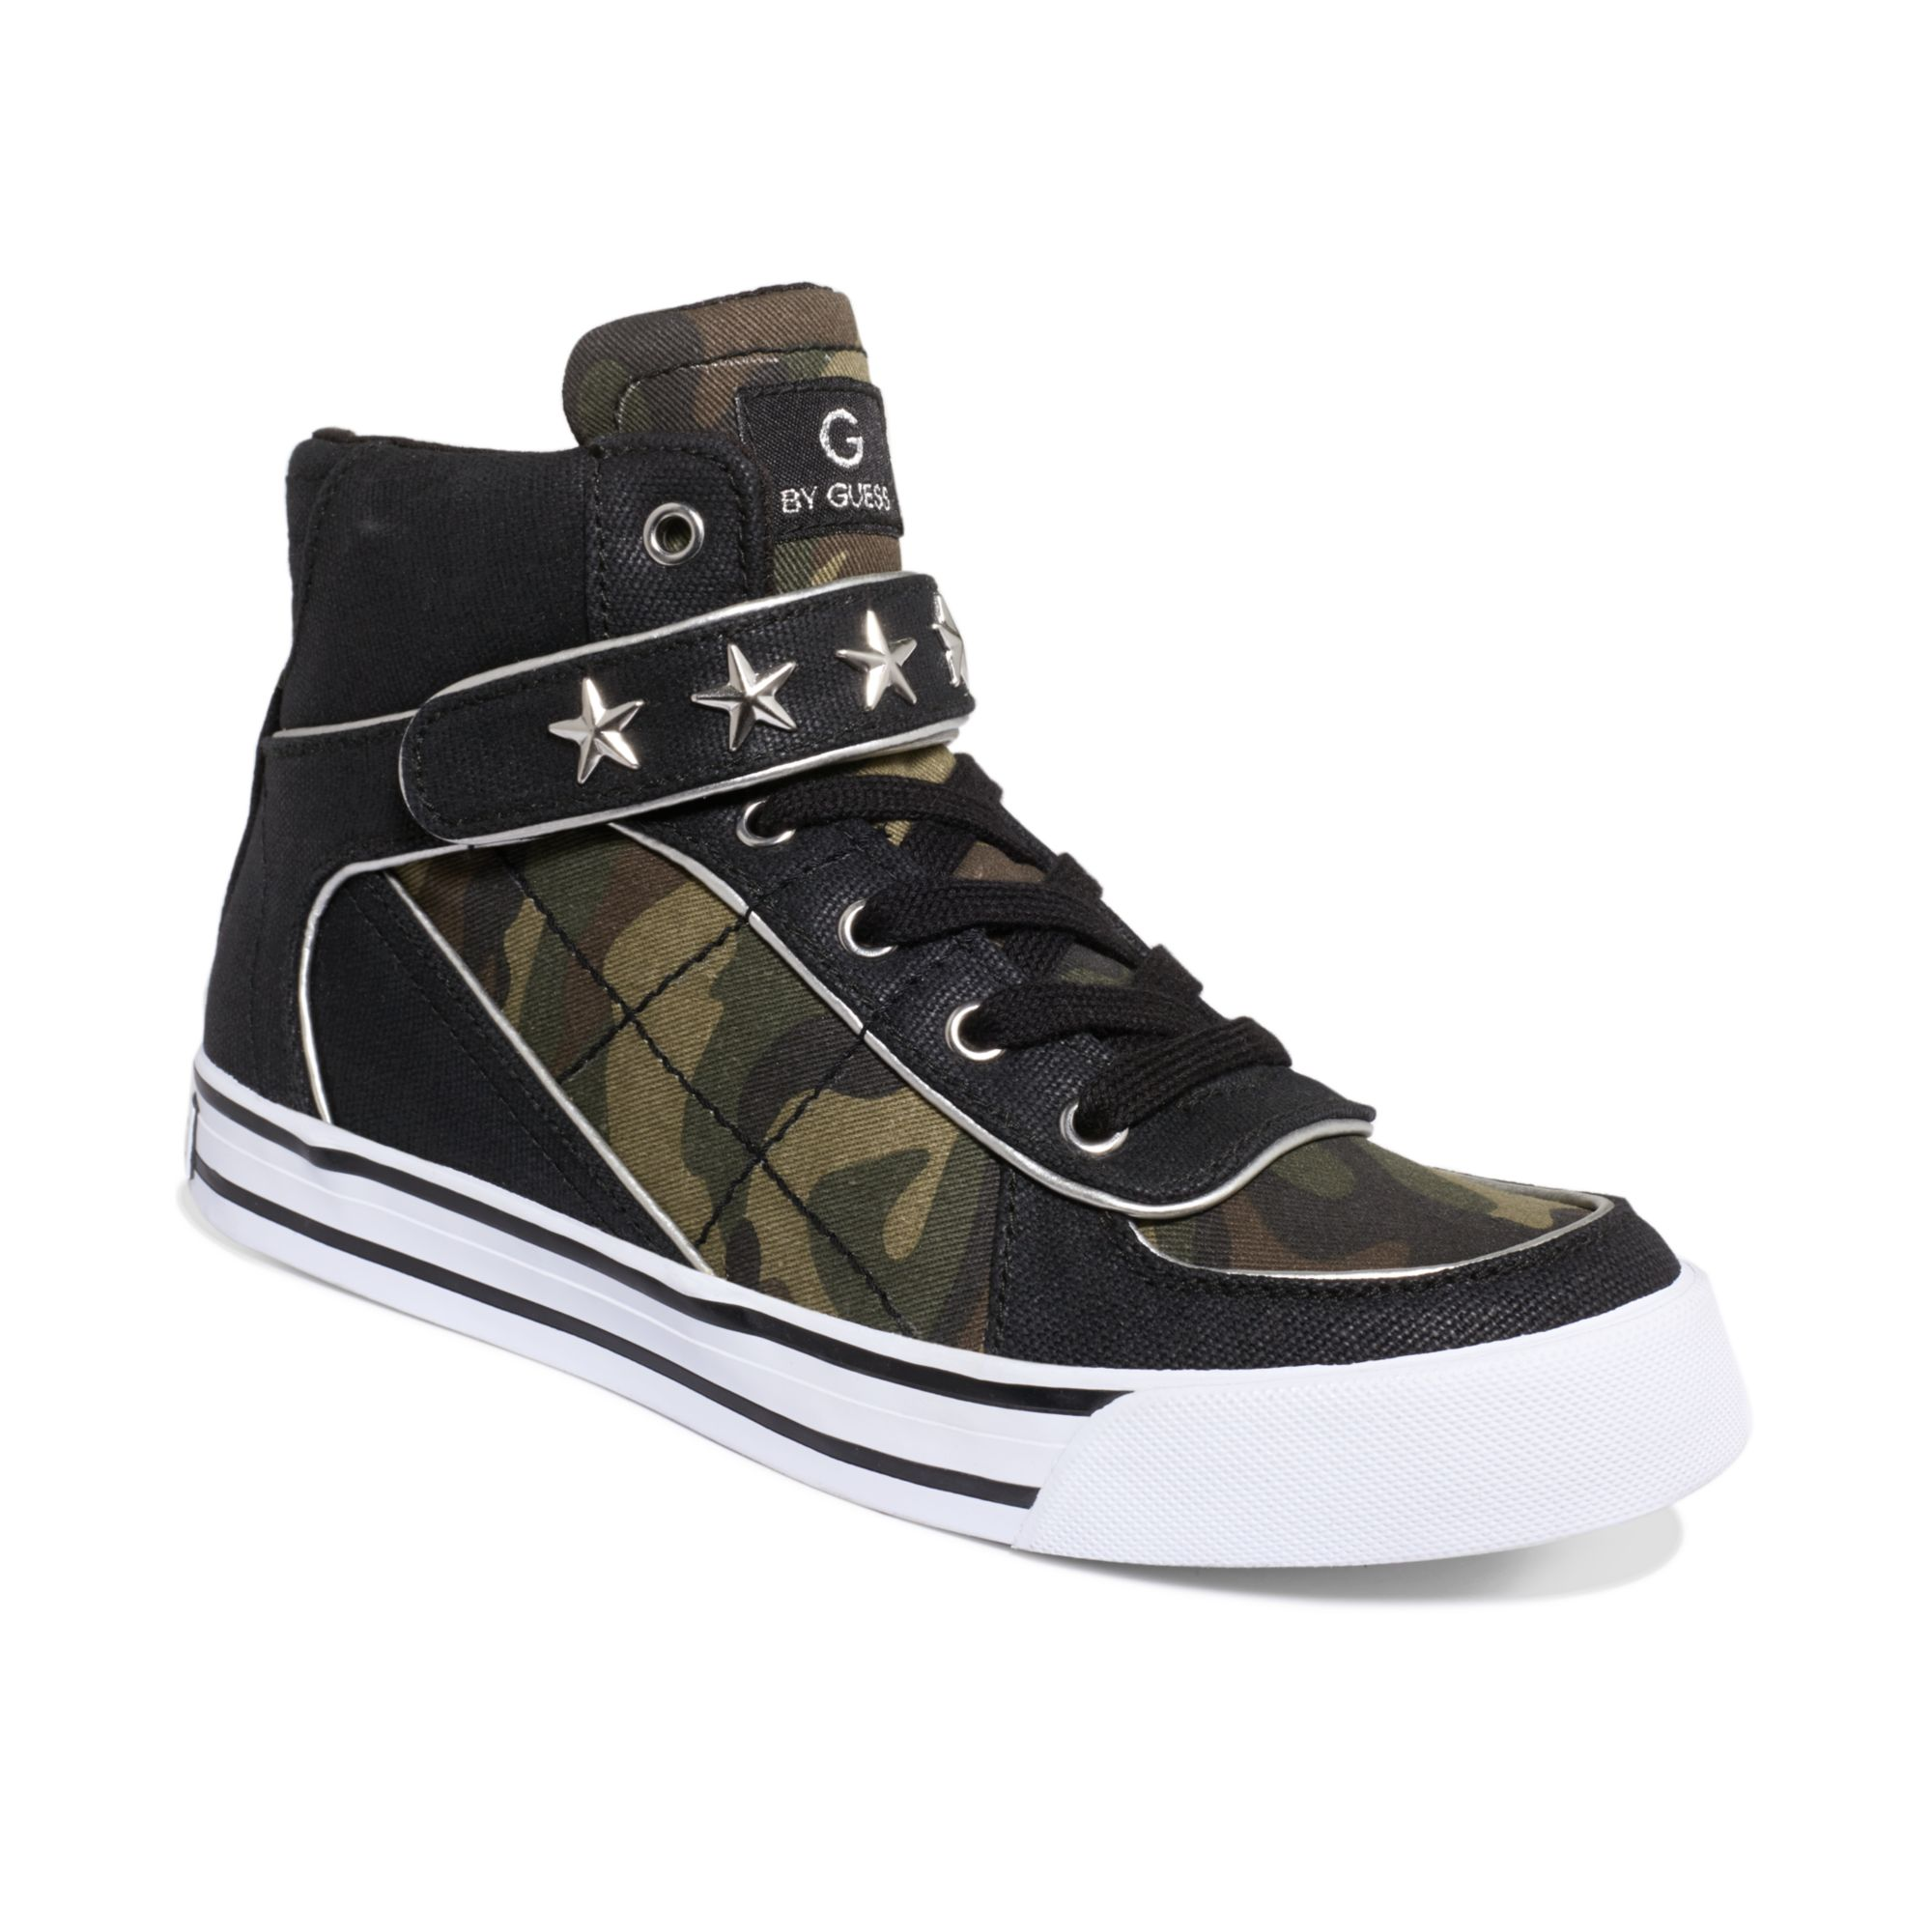 Diesel Womens Shoes For Sale